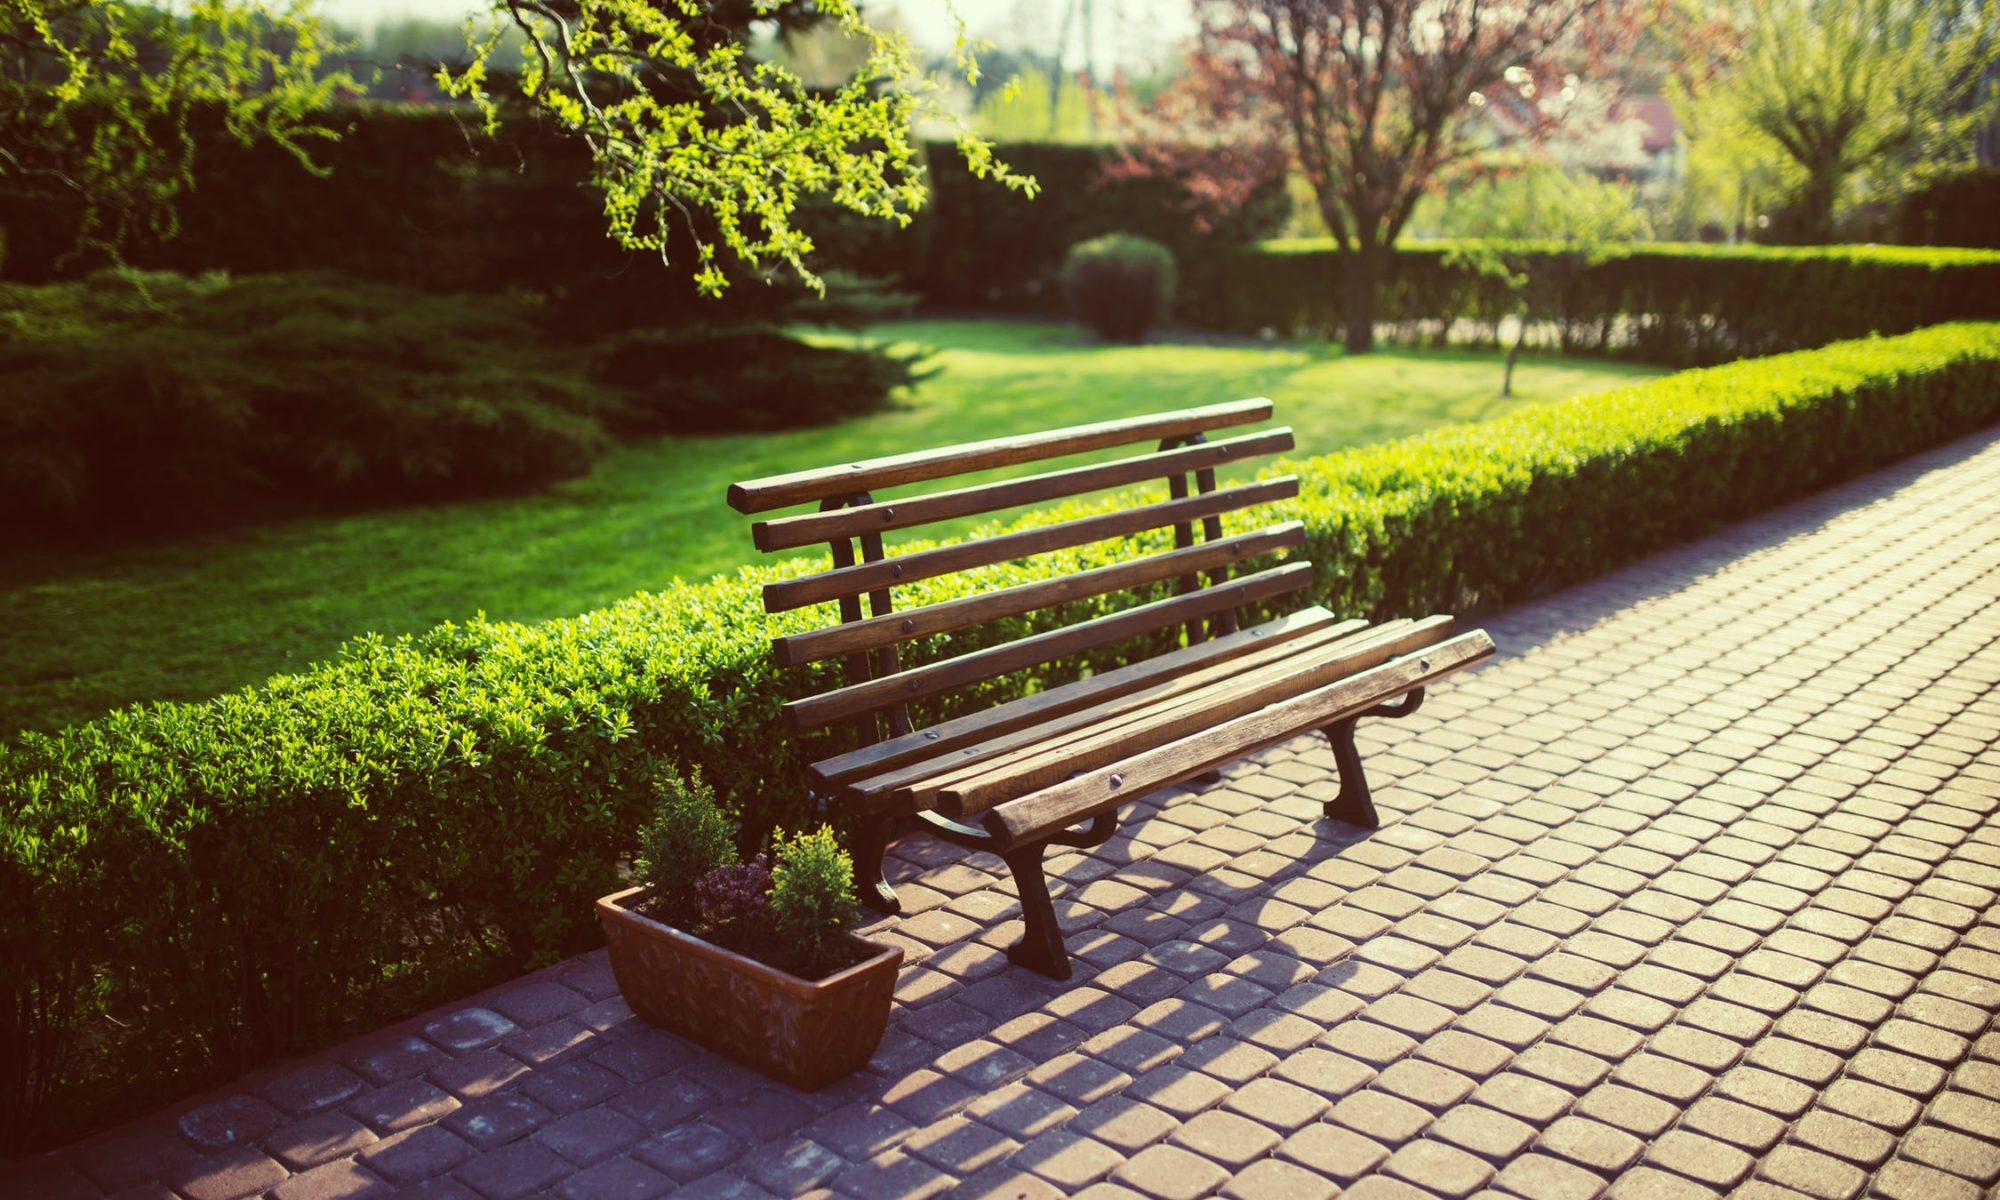 Bench Sitting in a Landscaped Garden